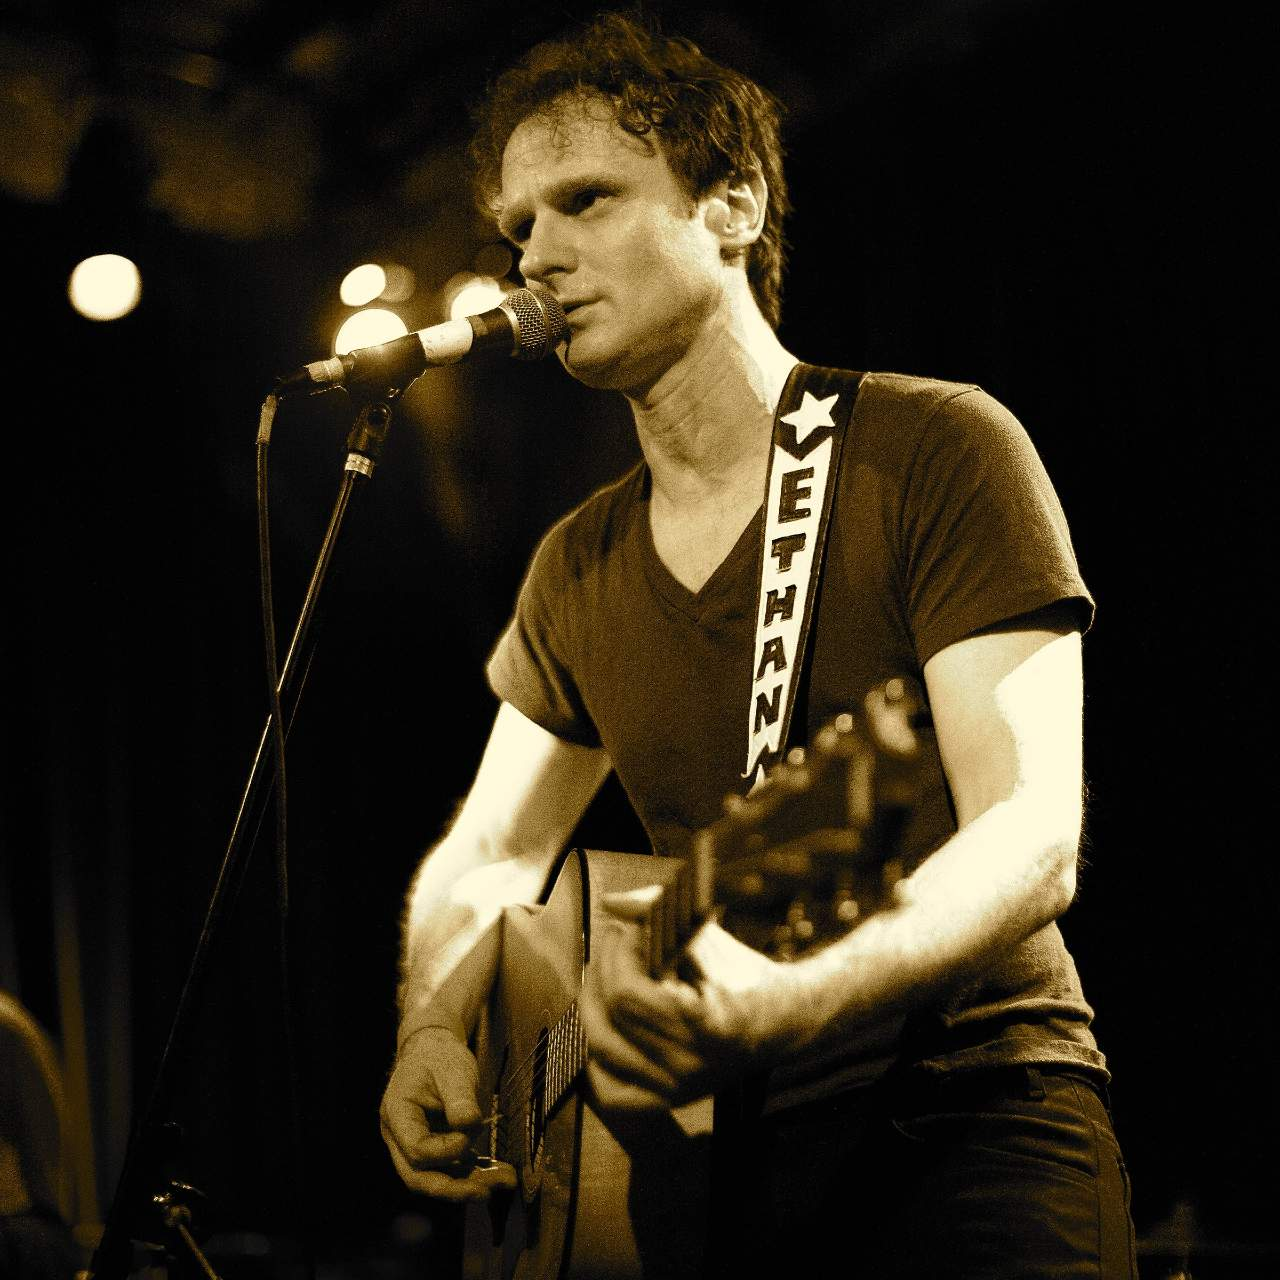 Ethan Gold at the Bootleg Theater